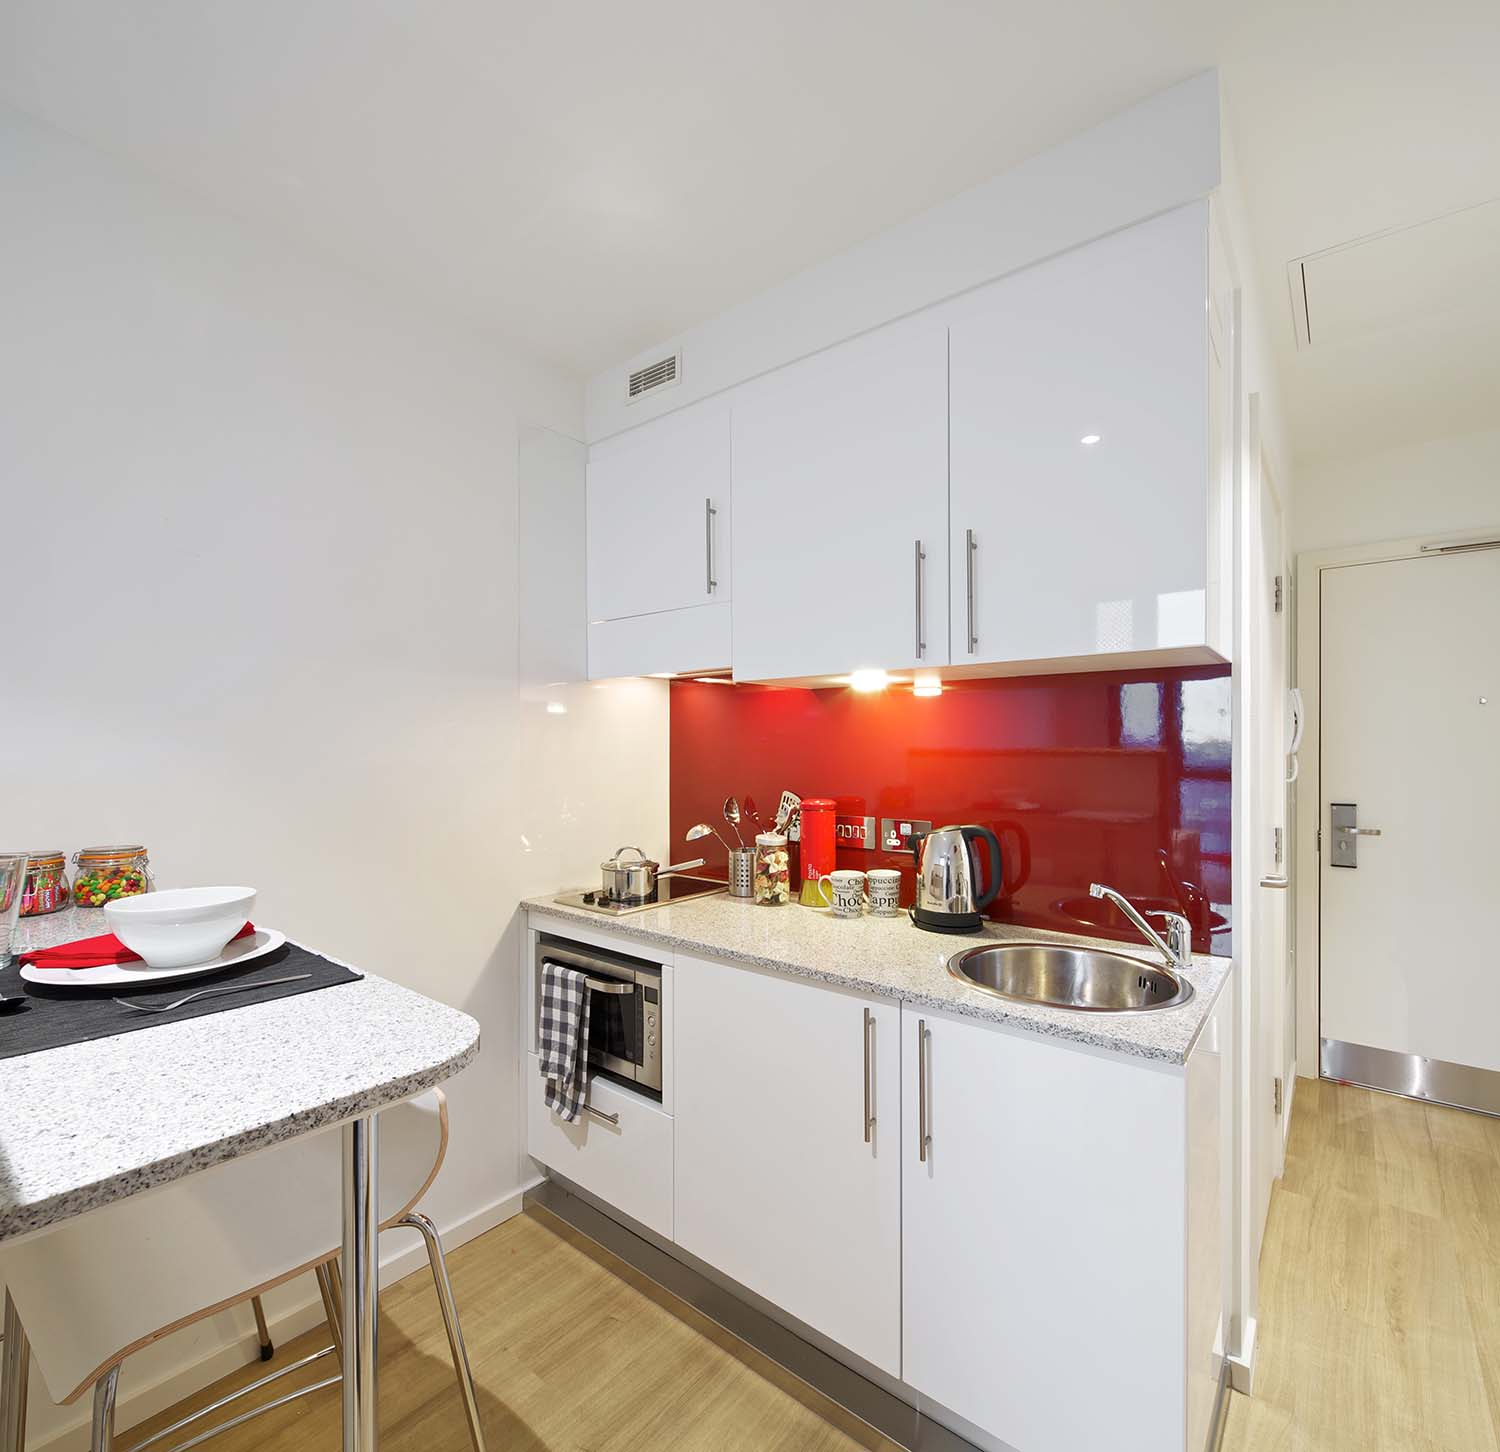 Kitchenette in the standard studio at GradPad Wood Lane Studios